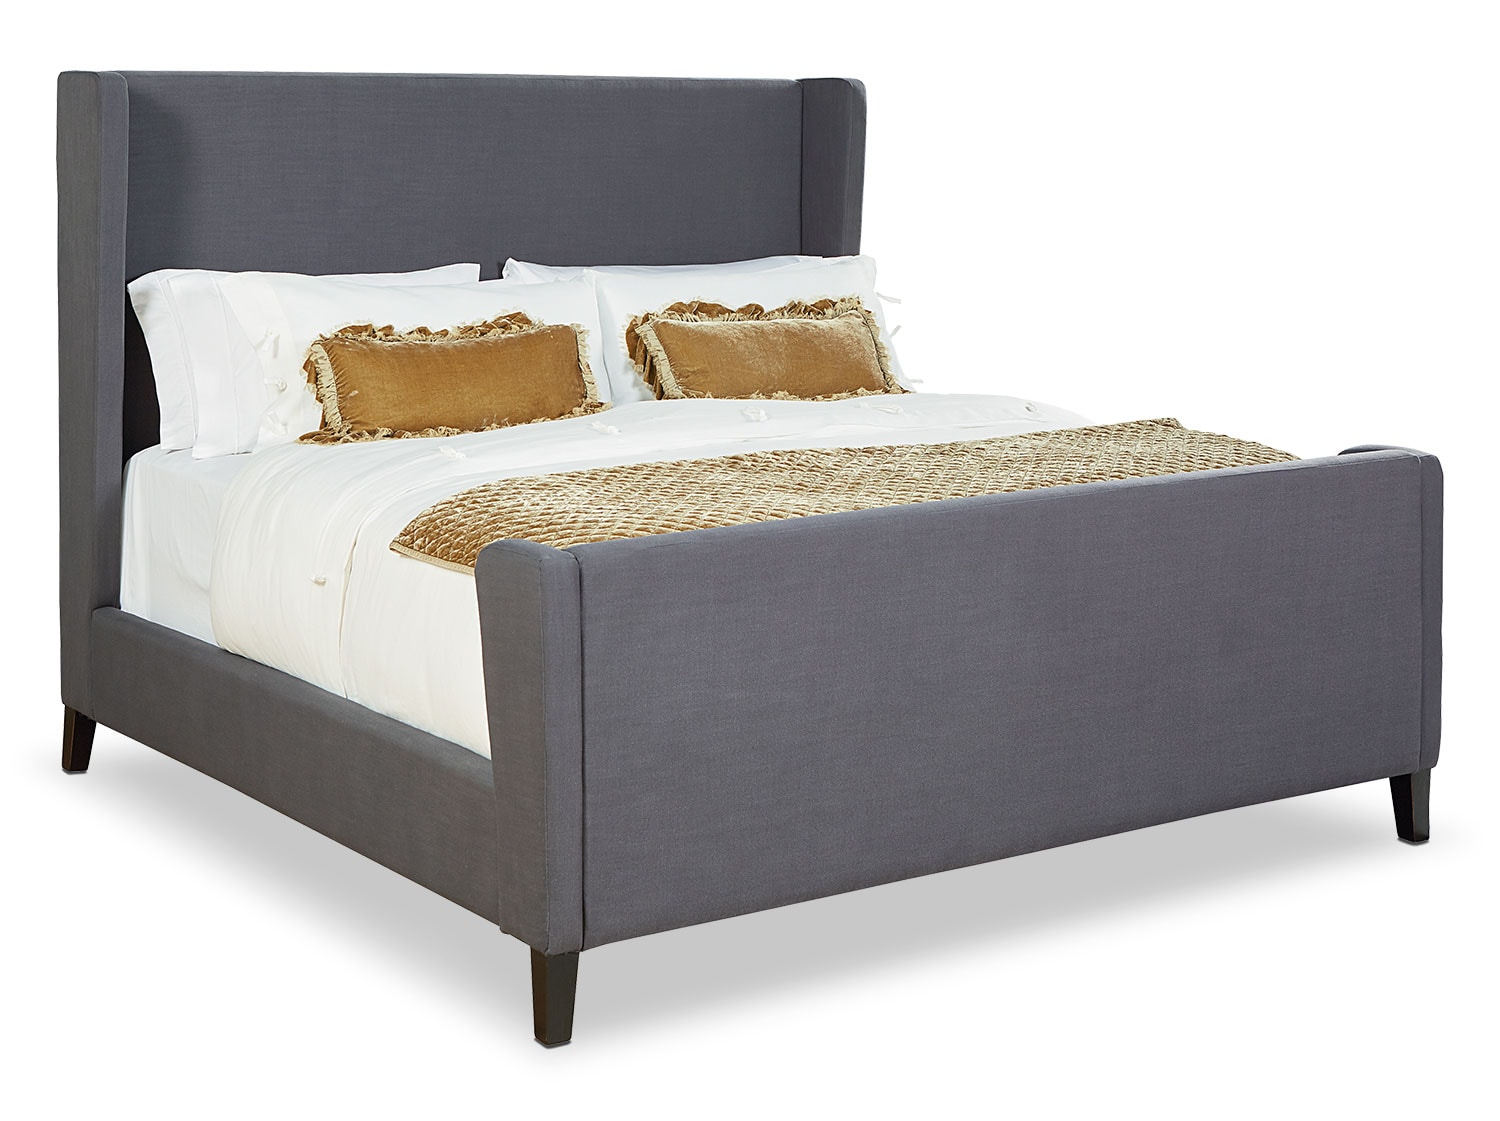 The Profile Upholstered Bed Collection